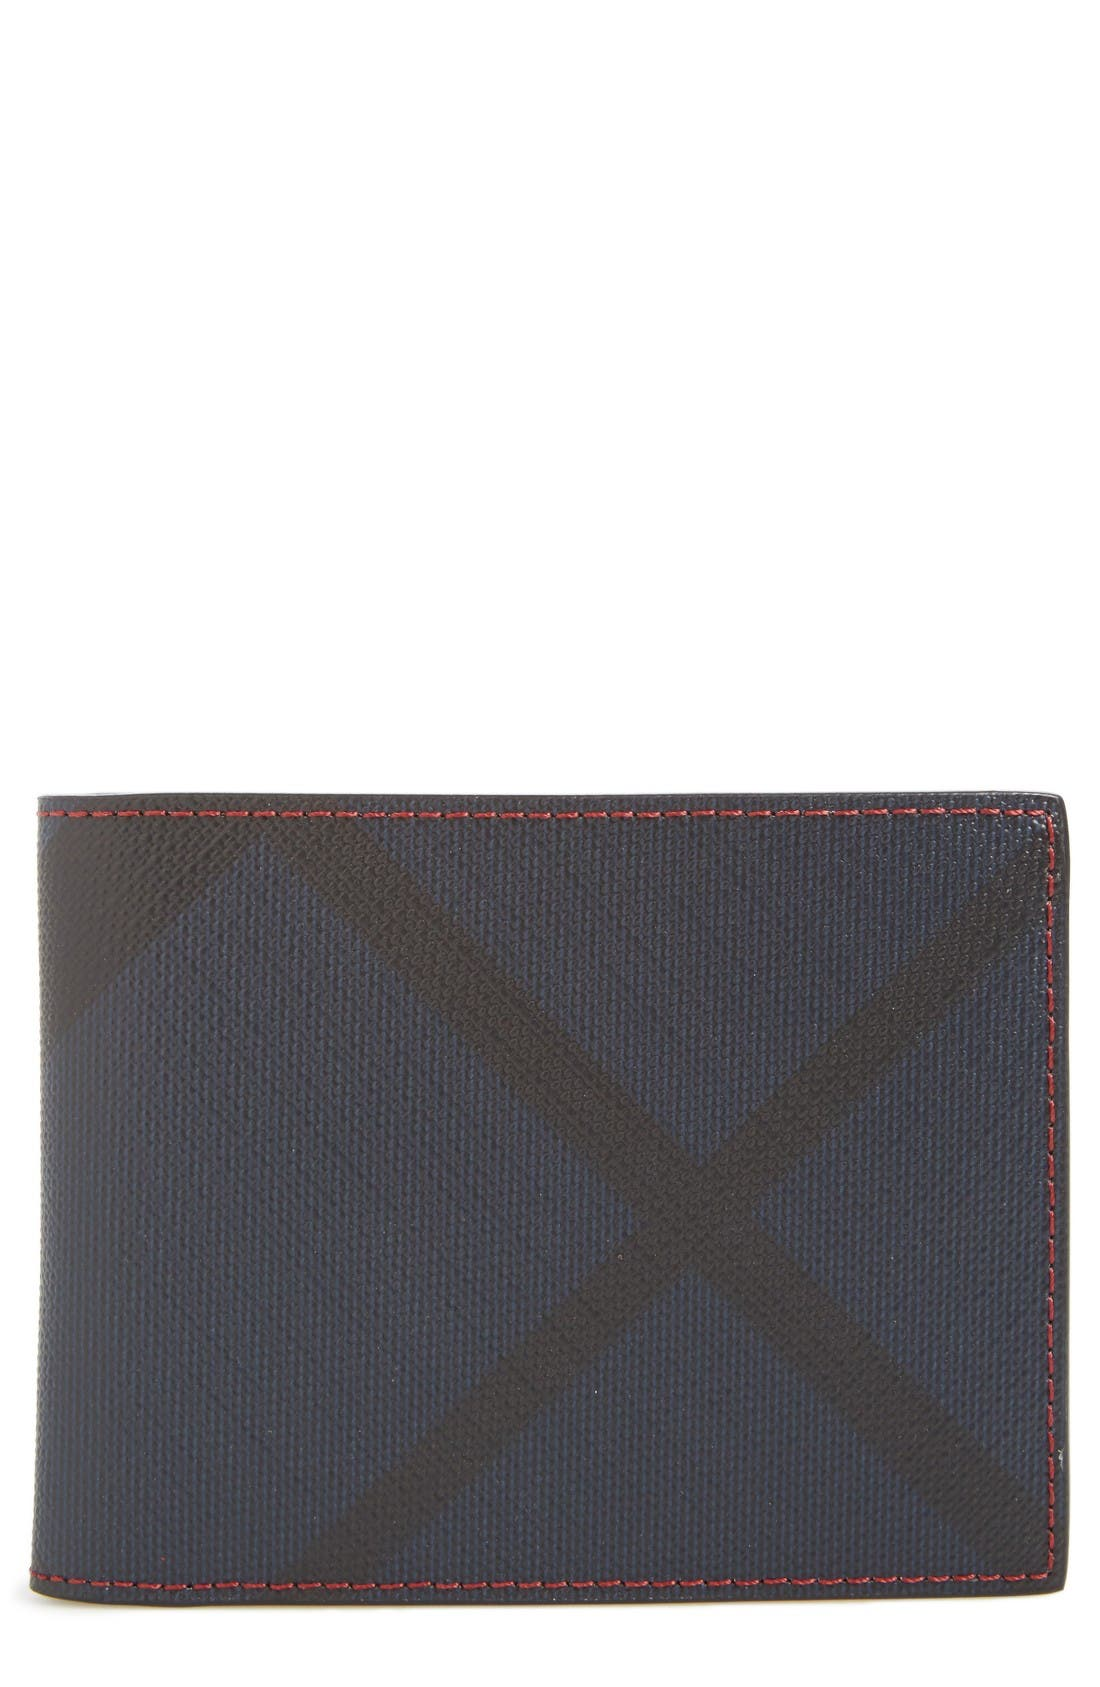 Sandon Wallet,                         Main,                         color, Parade Red